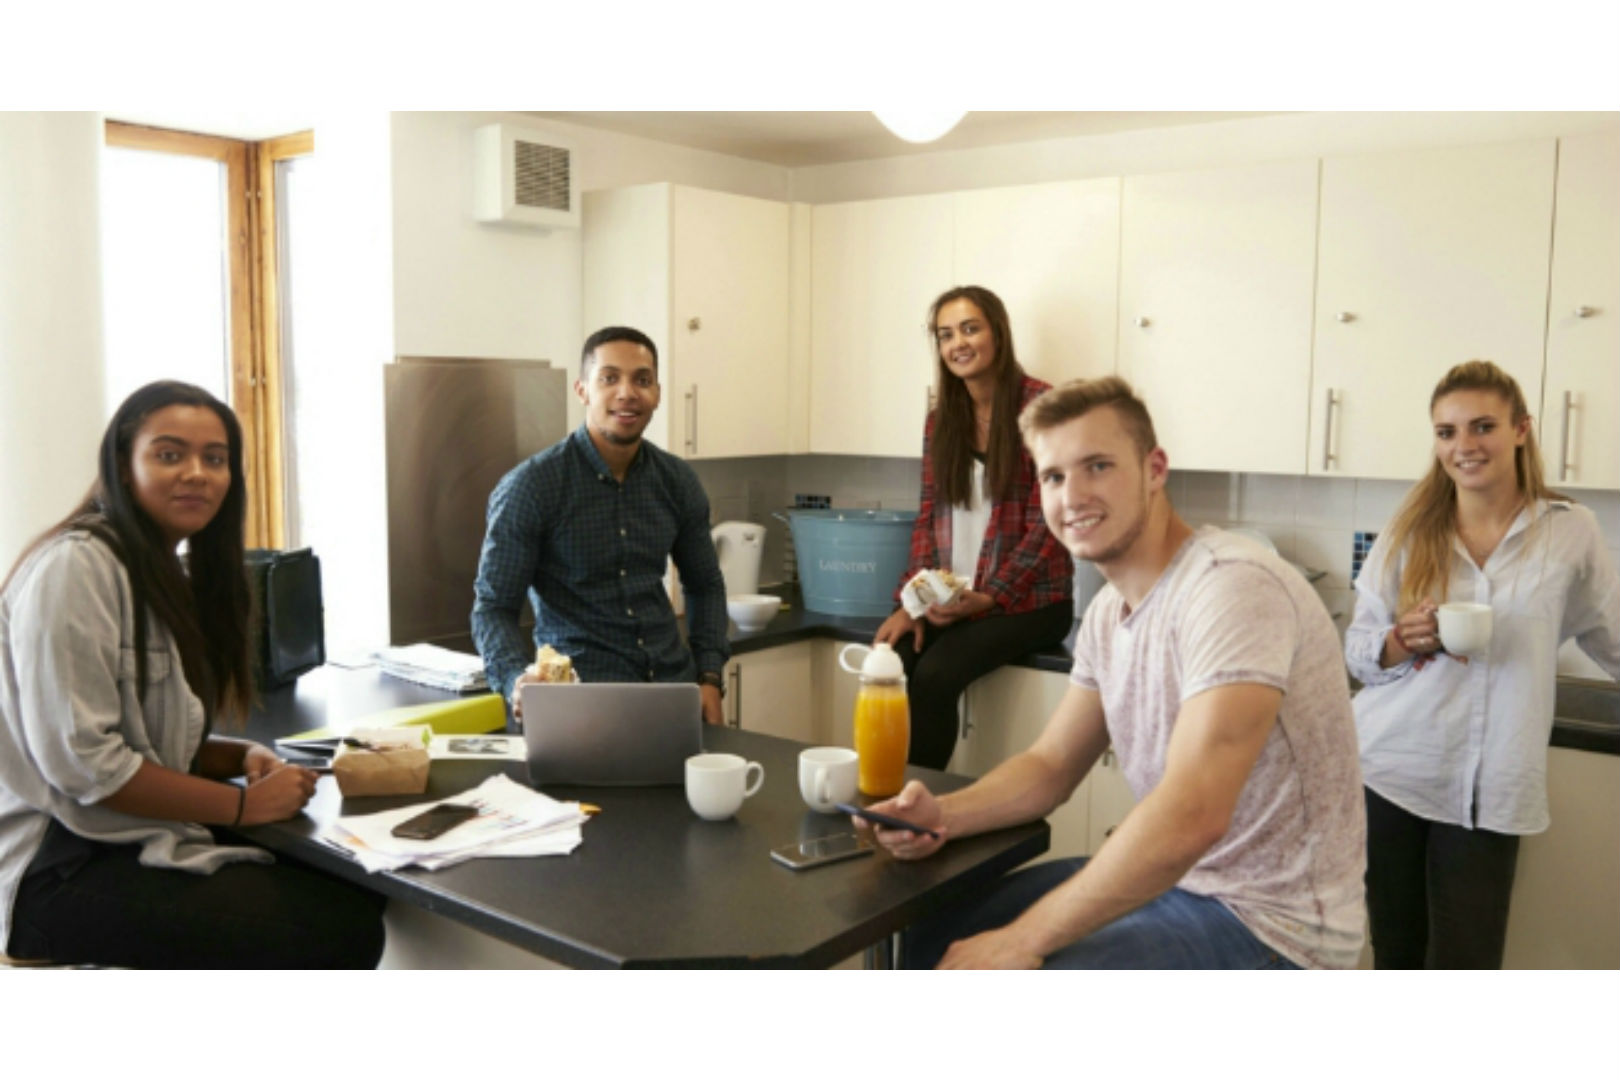 UK student property investment is booming